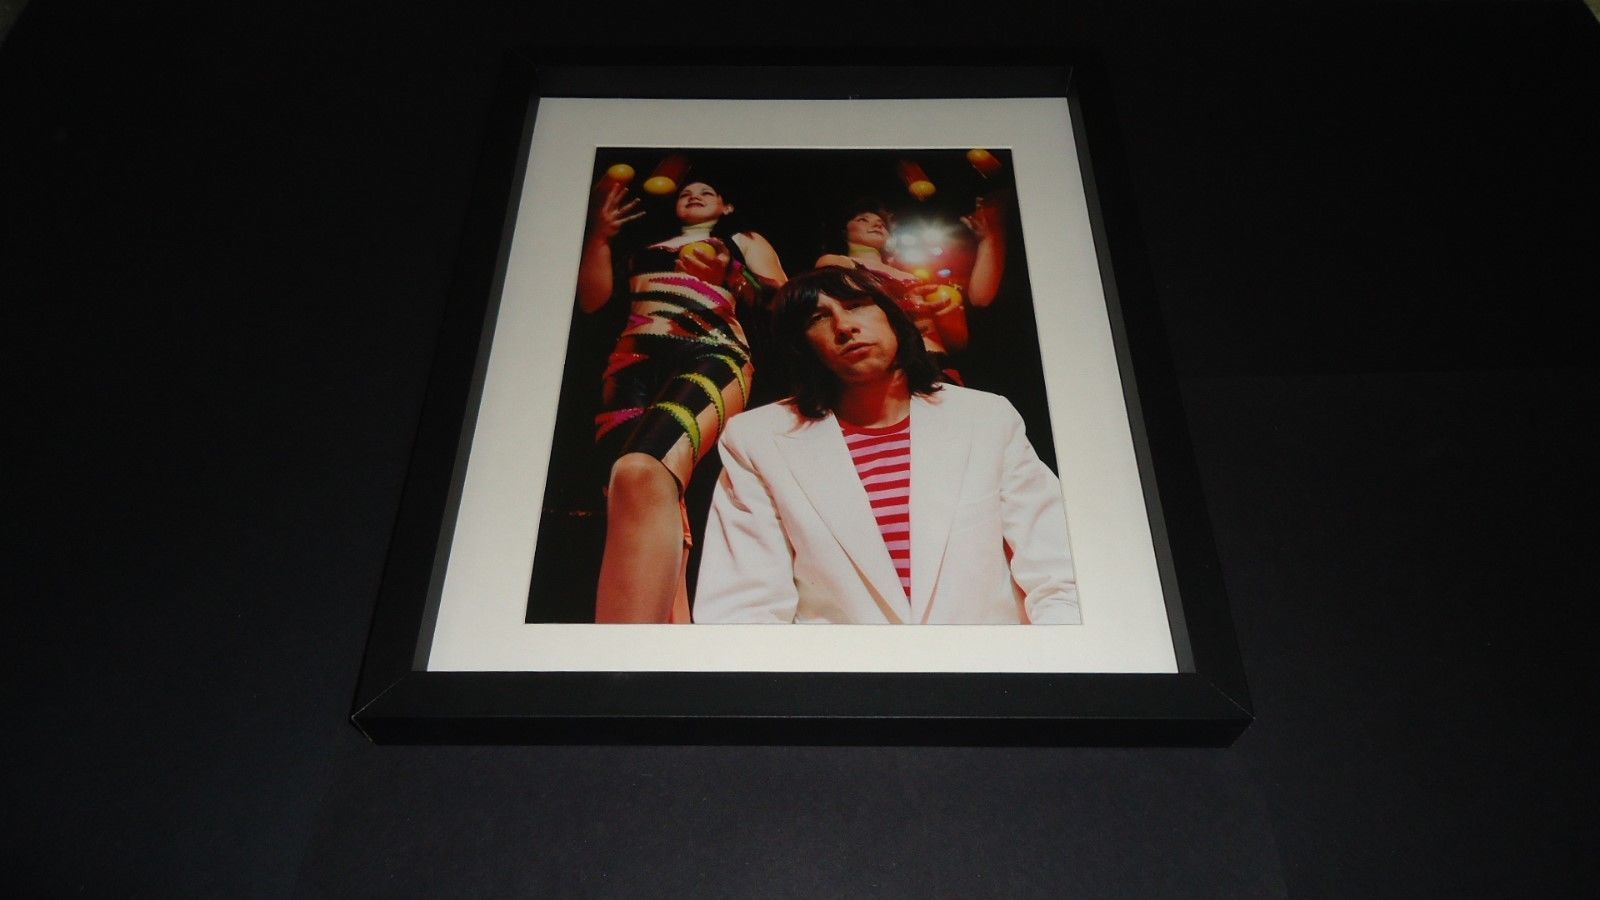 Primary image for Bobby Gillespie (Primal Scream-Original picture framed